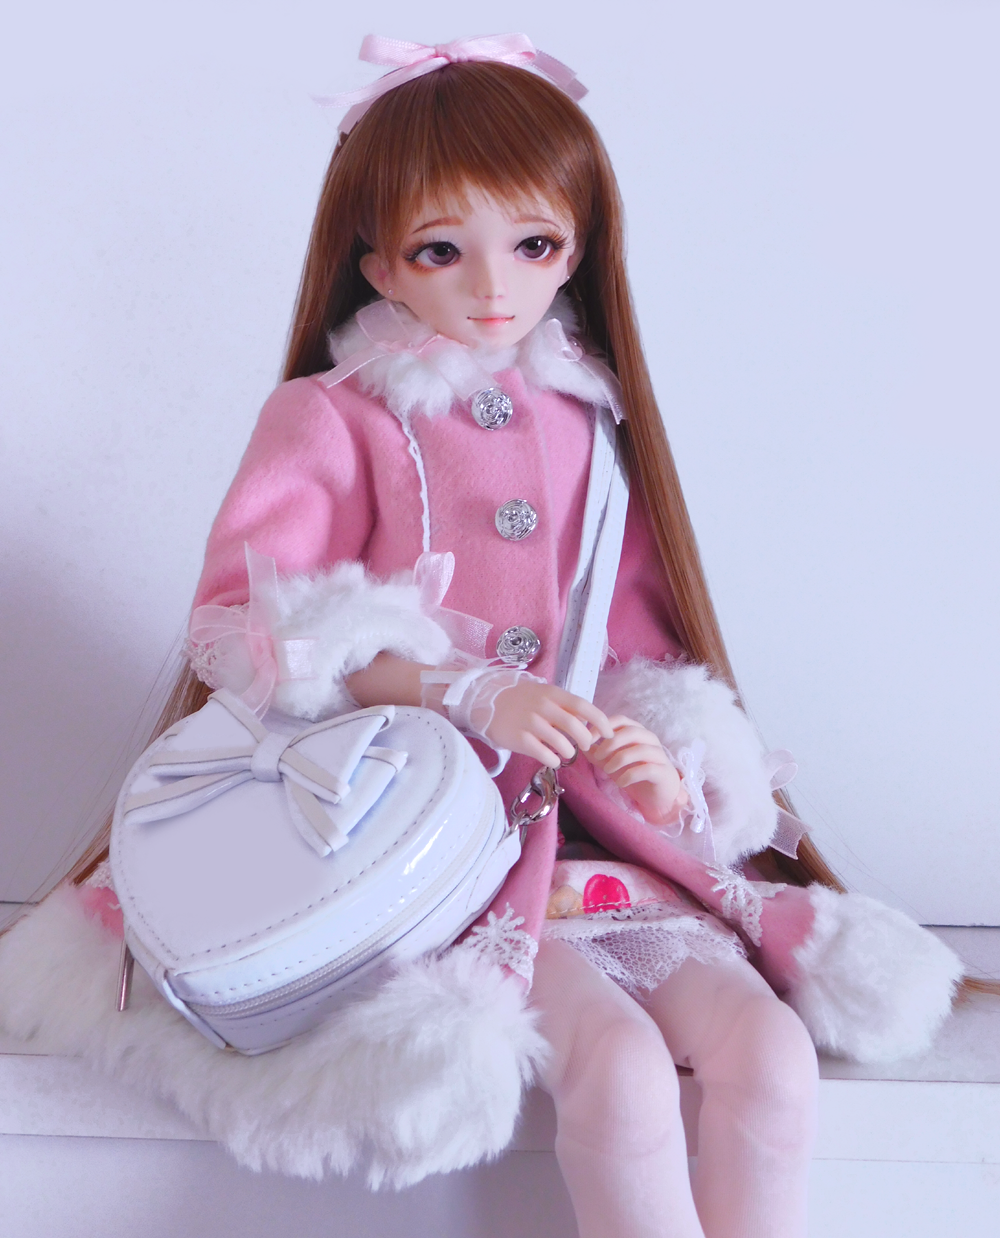 Lolita, Lolita Purse, Heart shaped bag, lolita bag, Sweet Lolita, Classic Lolita, Kawaii, Japanese fashion, Lolita bjd, Lolita doll, TaobaoRing, Taobao, Hitomi, Leekeworld Wing, Mako eyes, lolita, lolita coat, lolita winter coat, lolita bjd